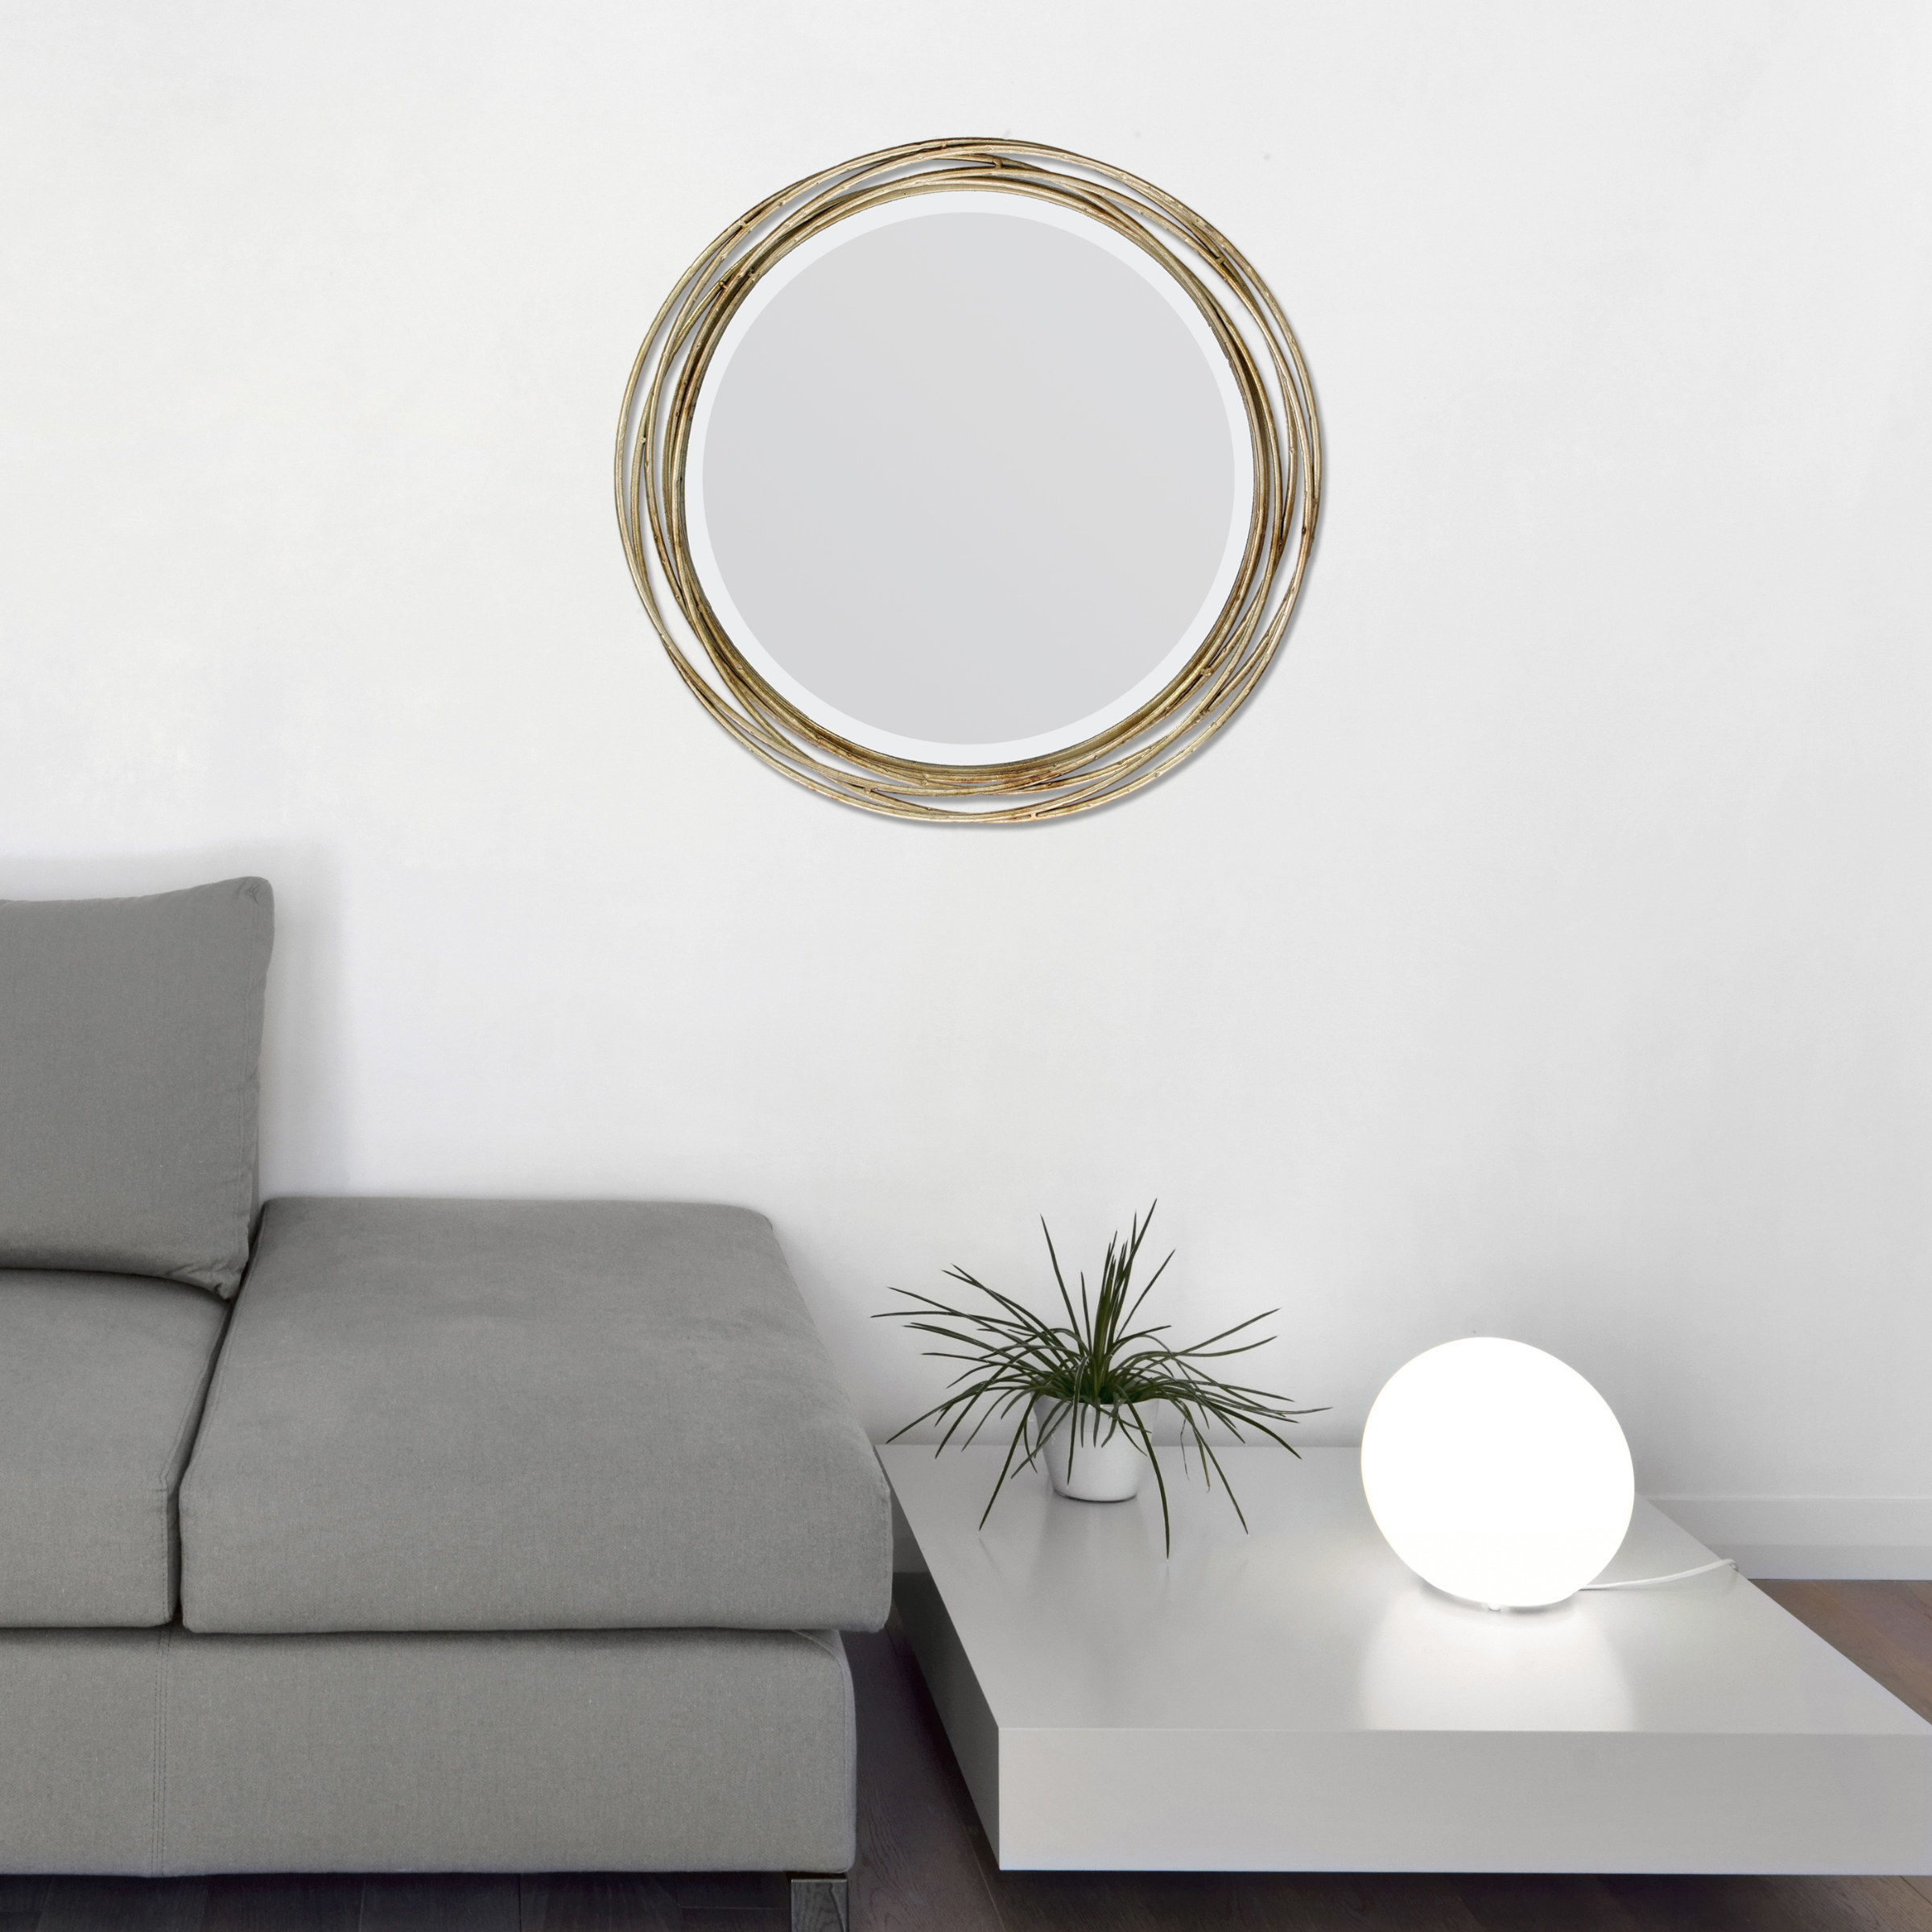 The mirror, which is round and surrounded by several loops of gold-toned wire